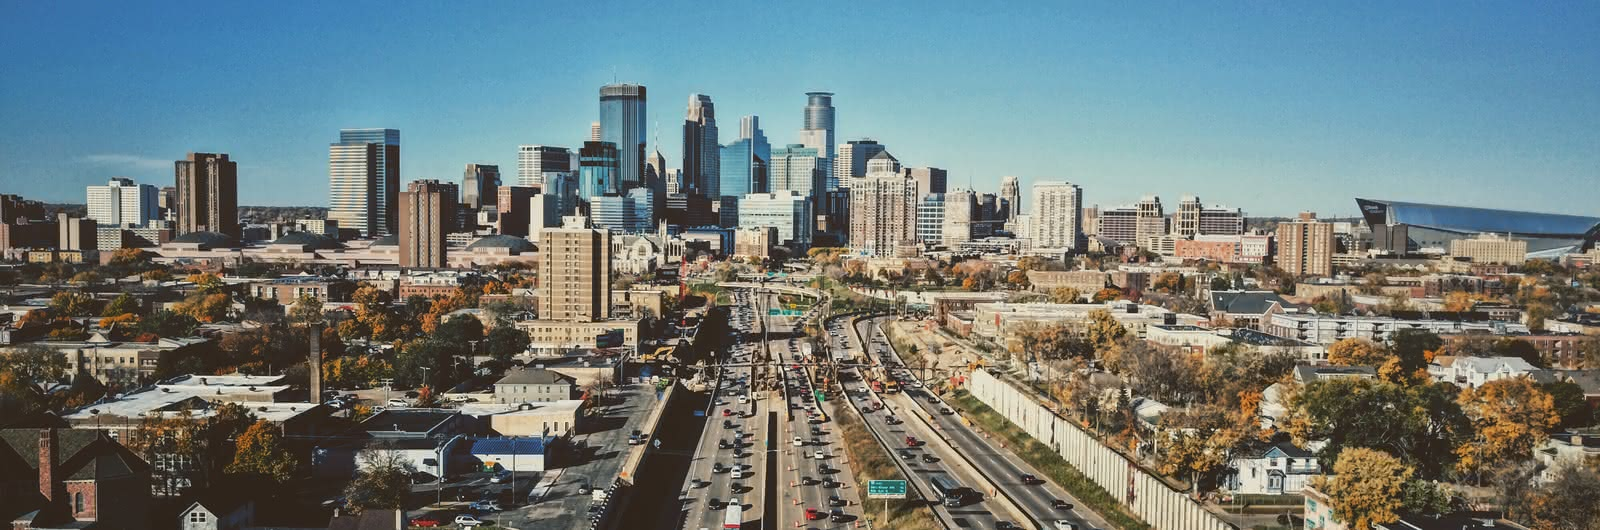 minneapolis city header